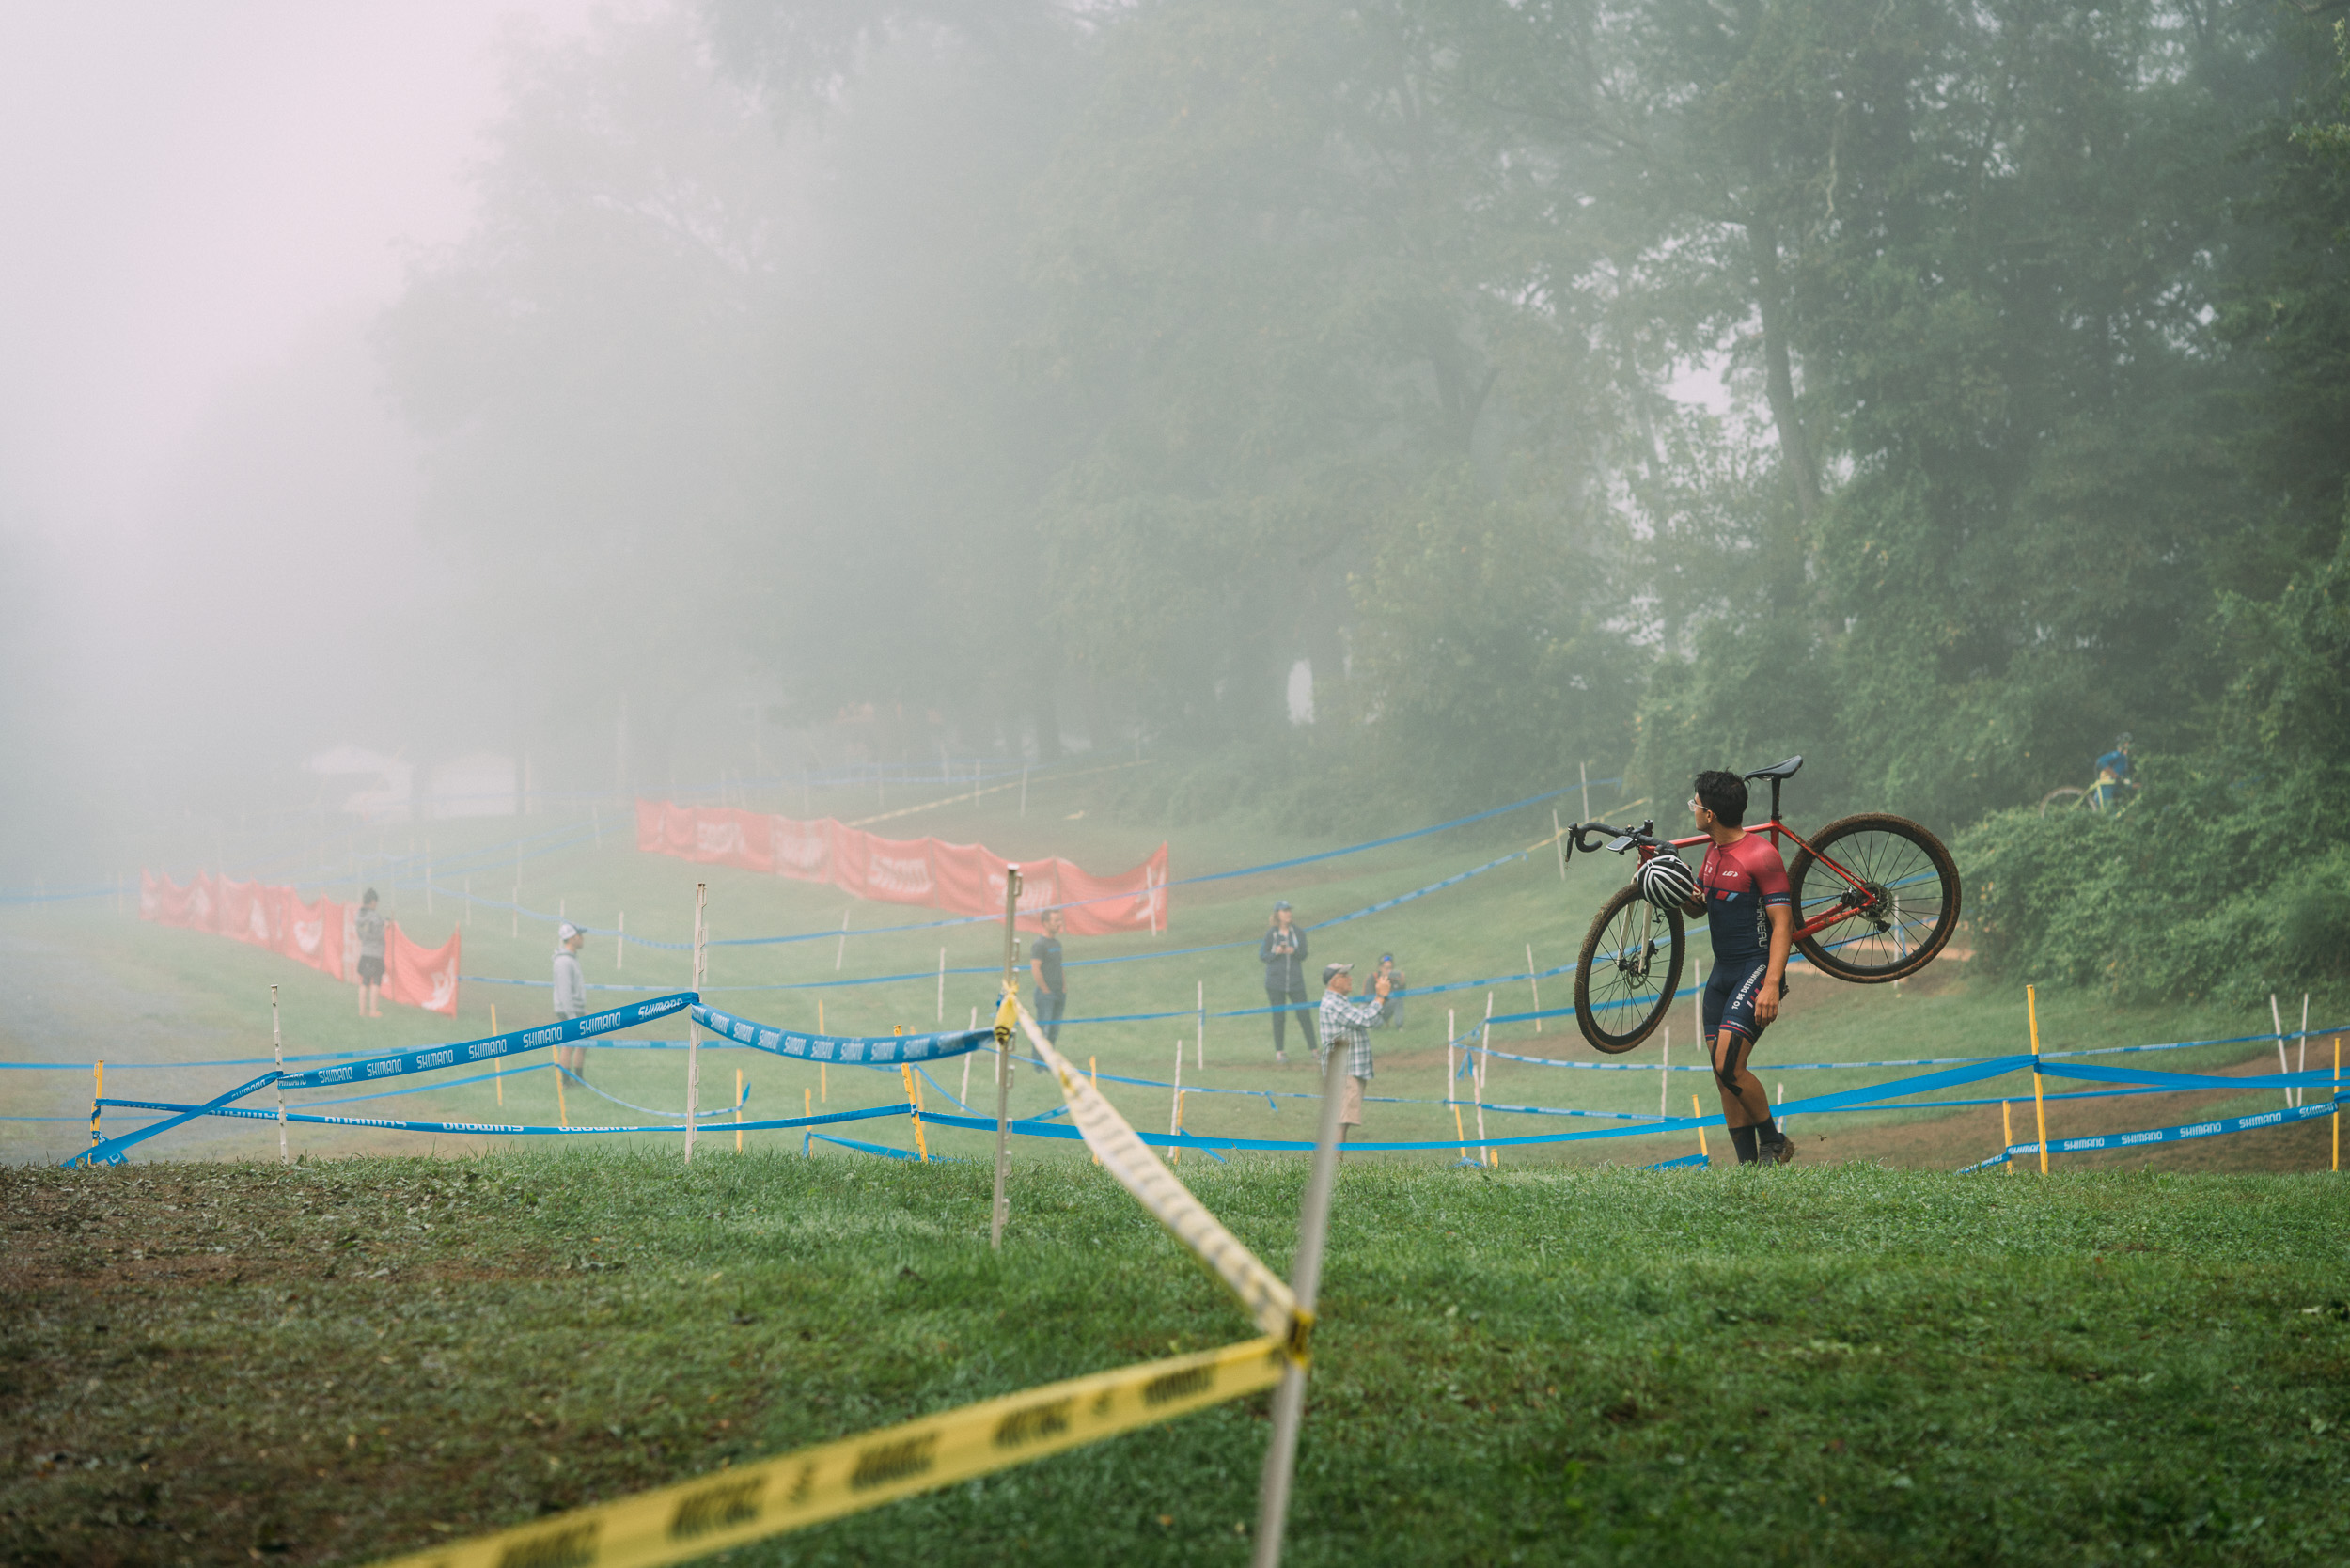 photo-rhetoric-to-be-determined-nittany-cyclocross-1231.jpg